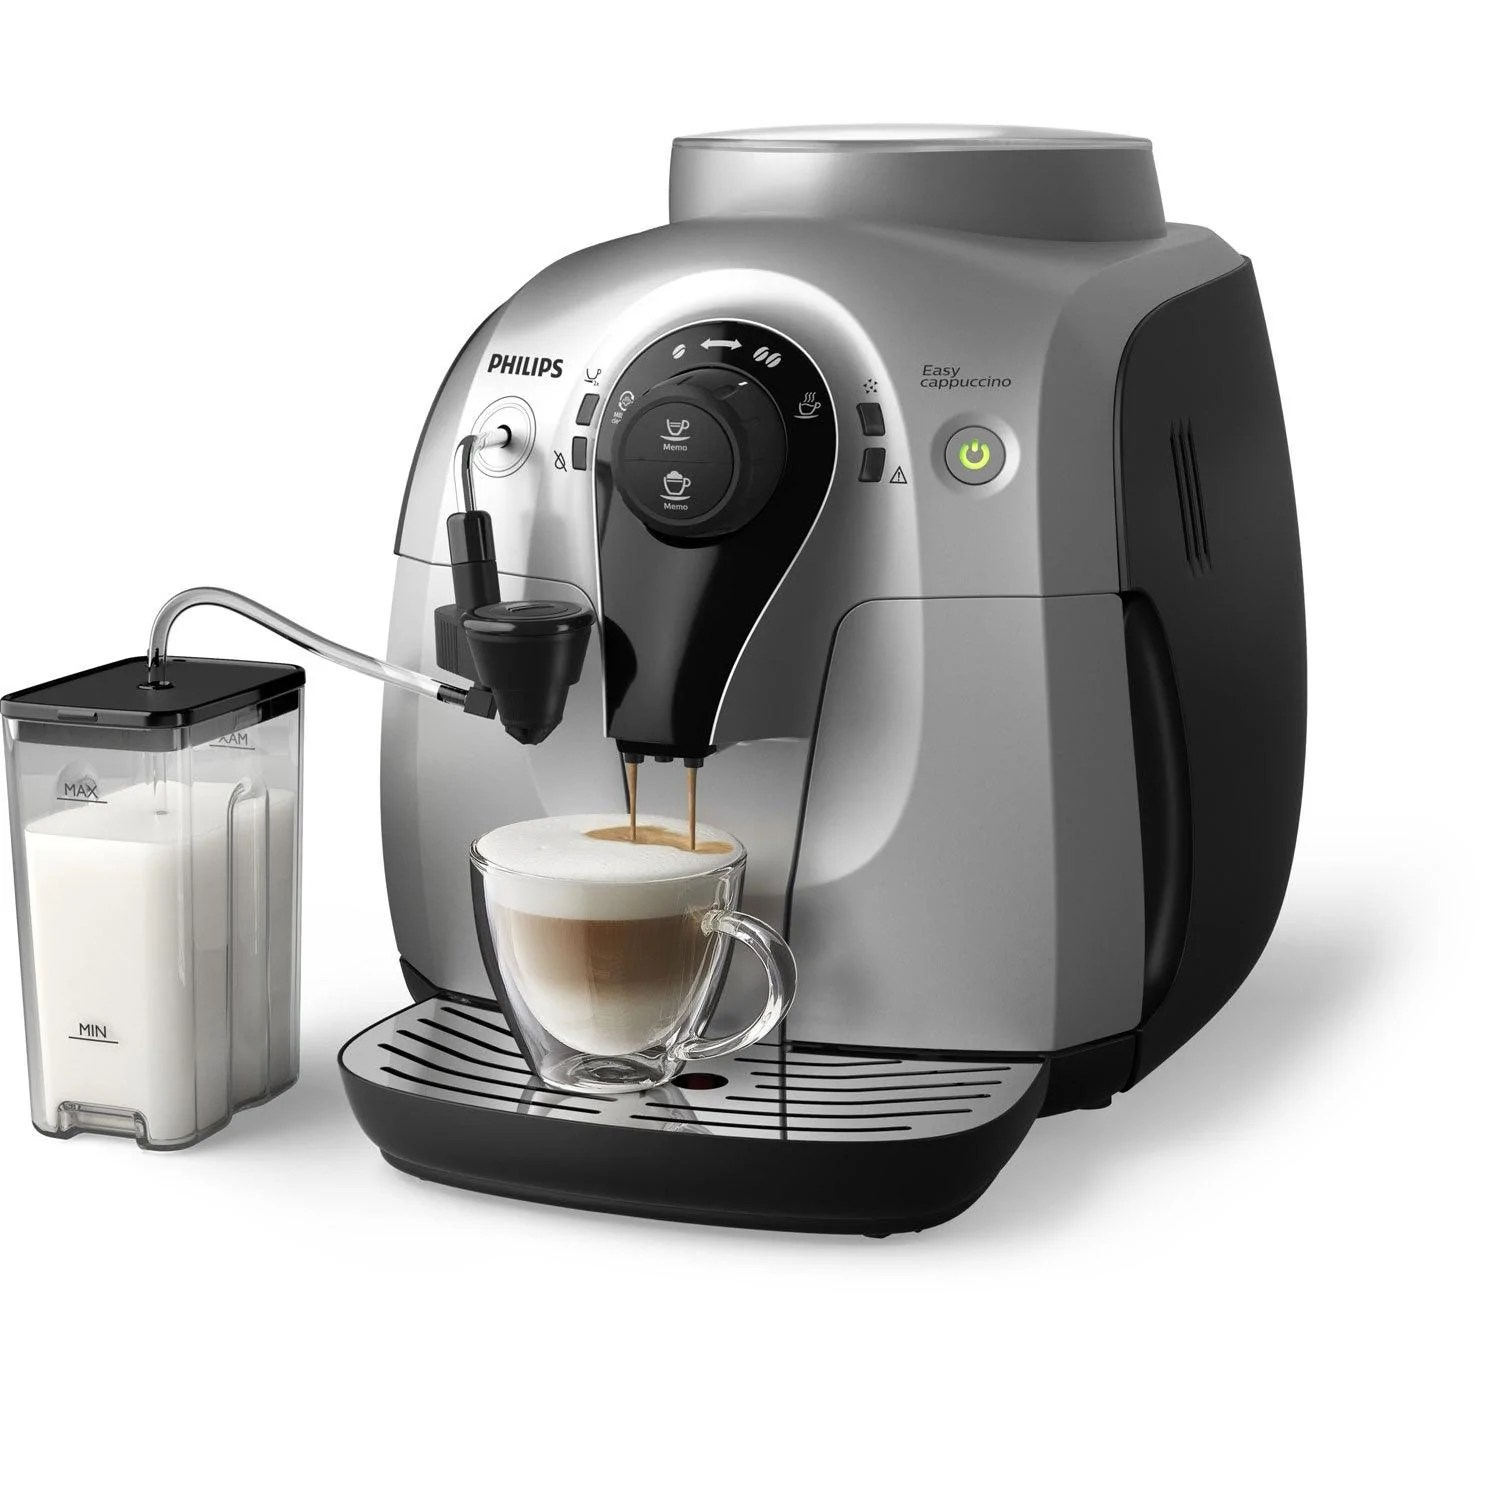 Philip Saeco Saeco Cappuccino Machine Topsimages